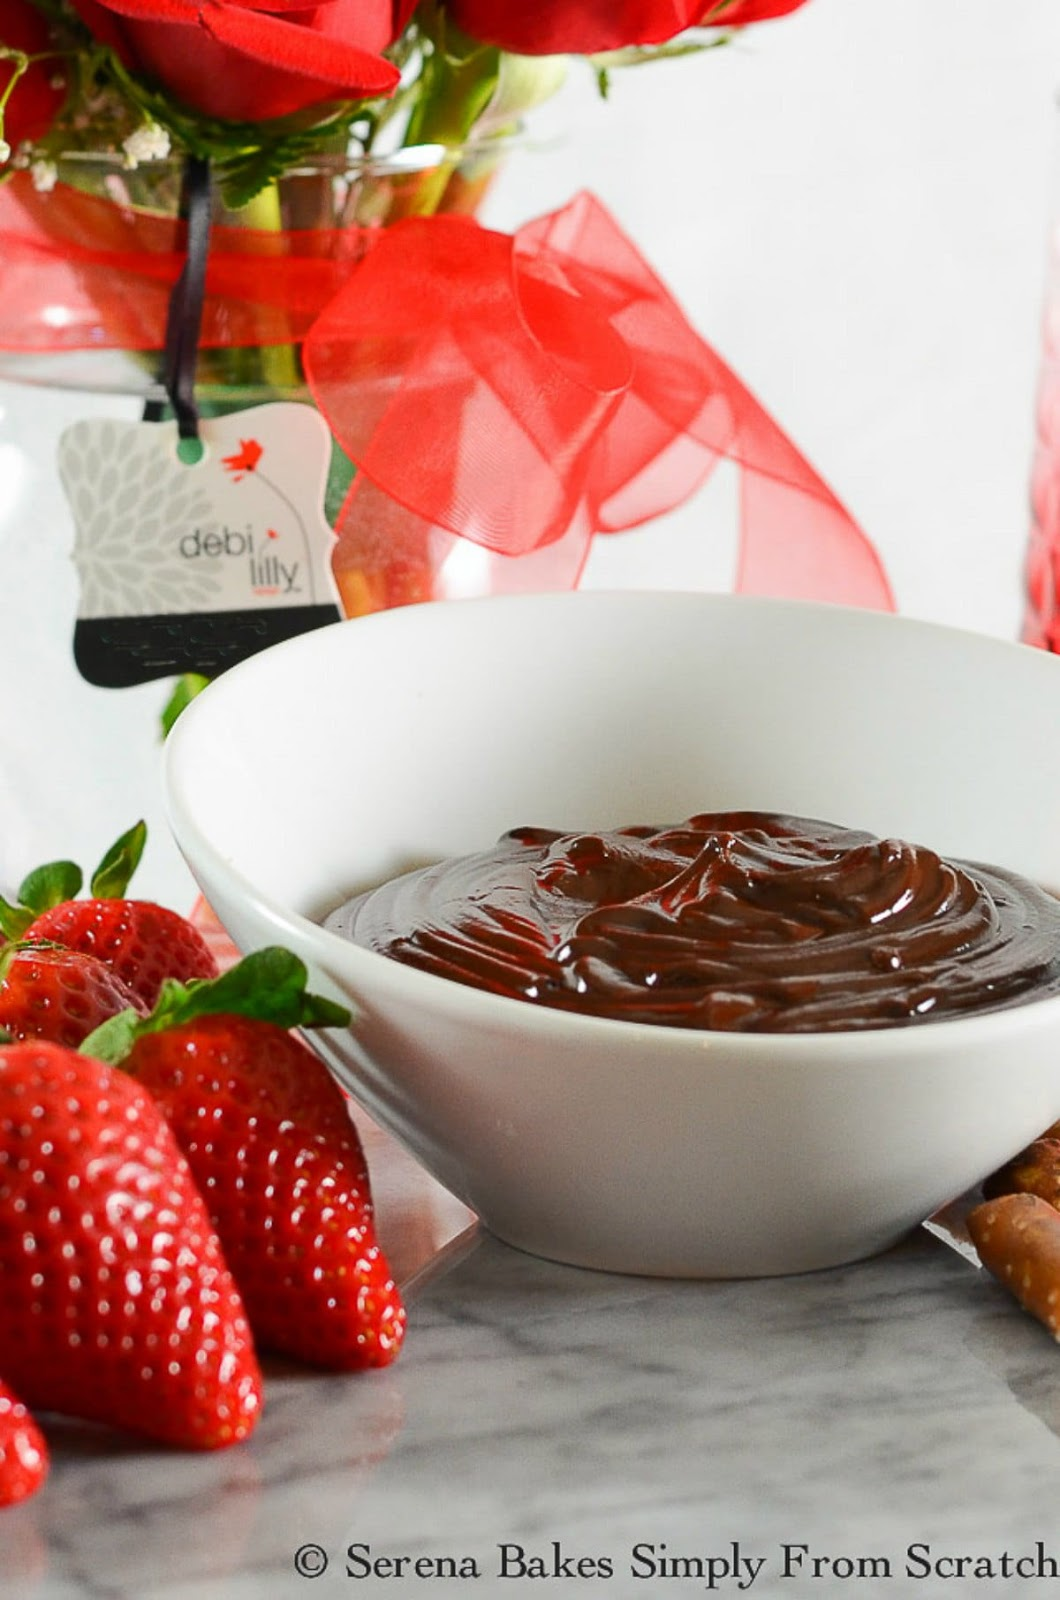 Hot Fudge Chocolate Fondue with strawberries and pretzel rods for dipping is a perfect dessert for Valentines Day or Easter from Serena Bakes Simply From Scratch.